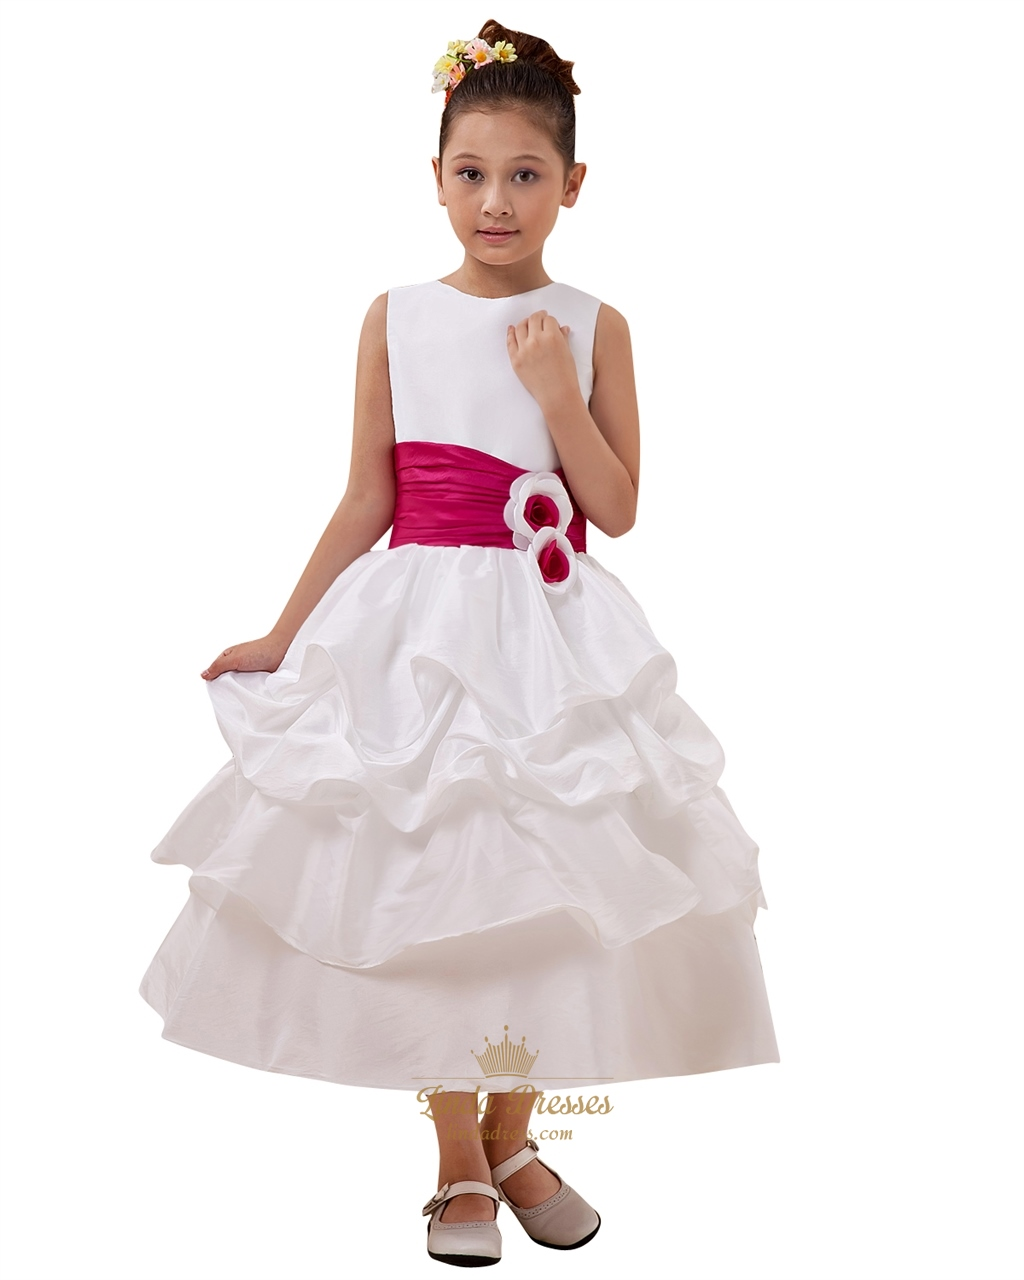 White Ankle Length Taffeta Layered Flower Girl Dress With Hot Pink